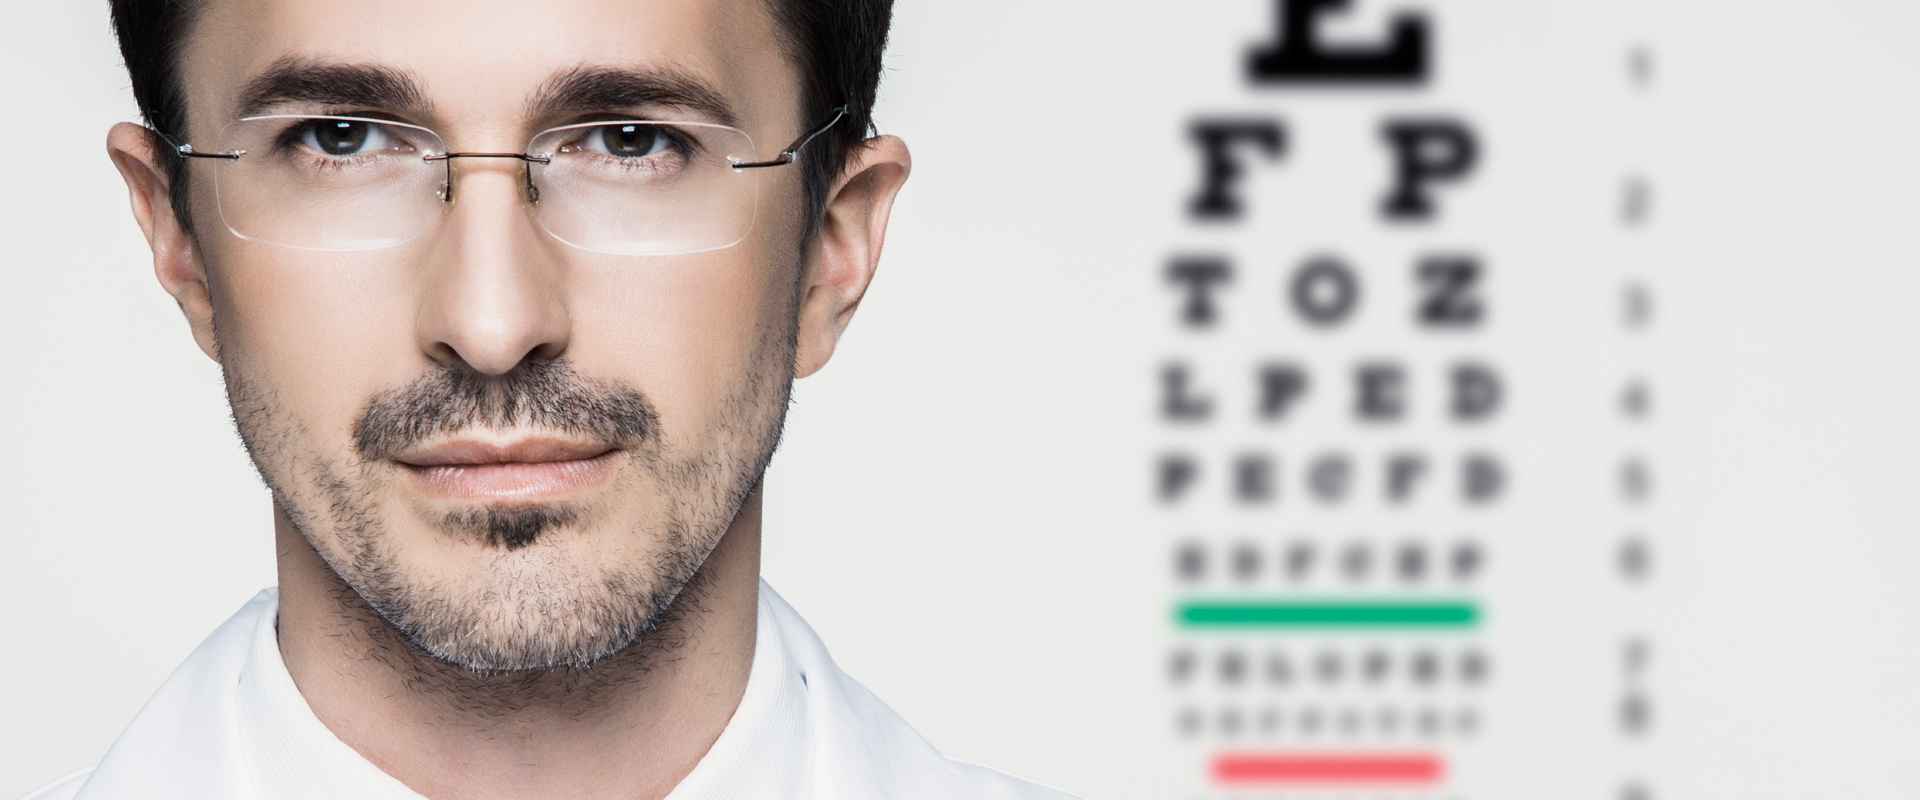 Ophthalmologist with eye chart behind him.